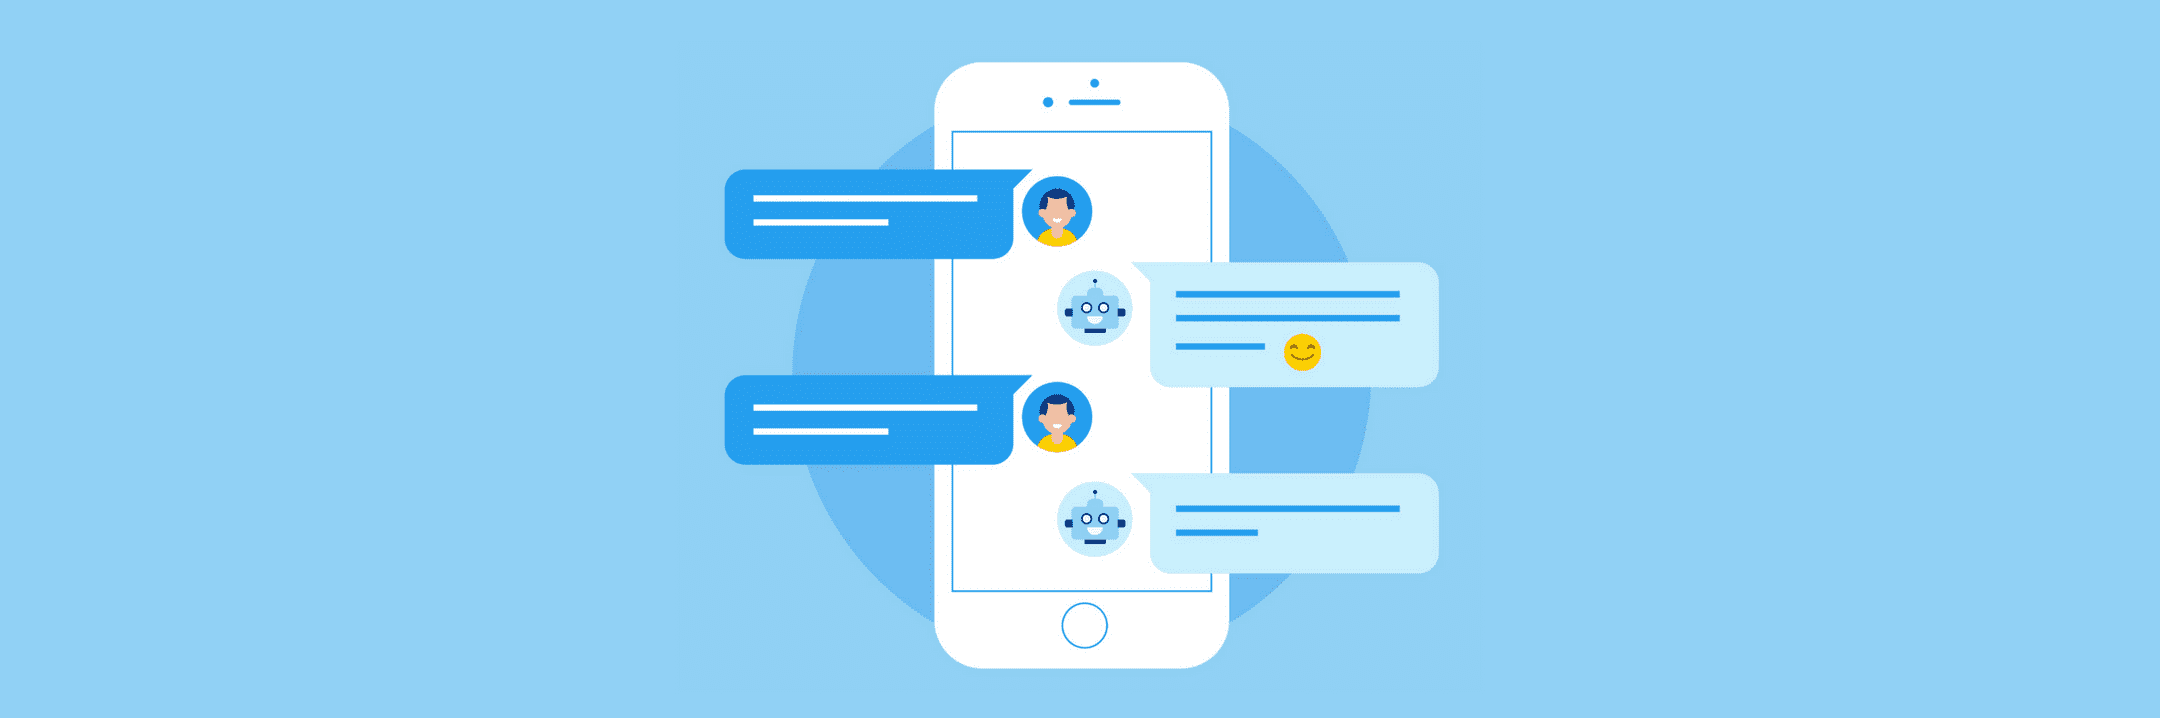 chat bot customer experience